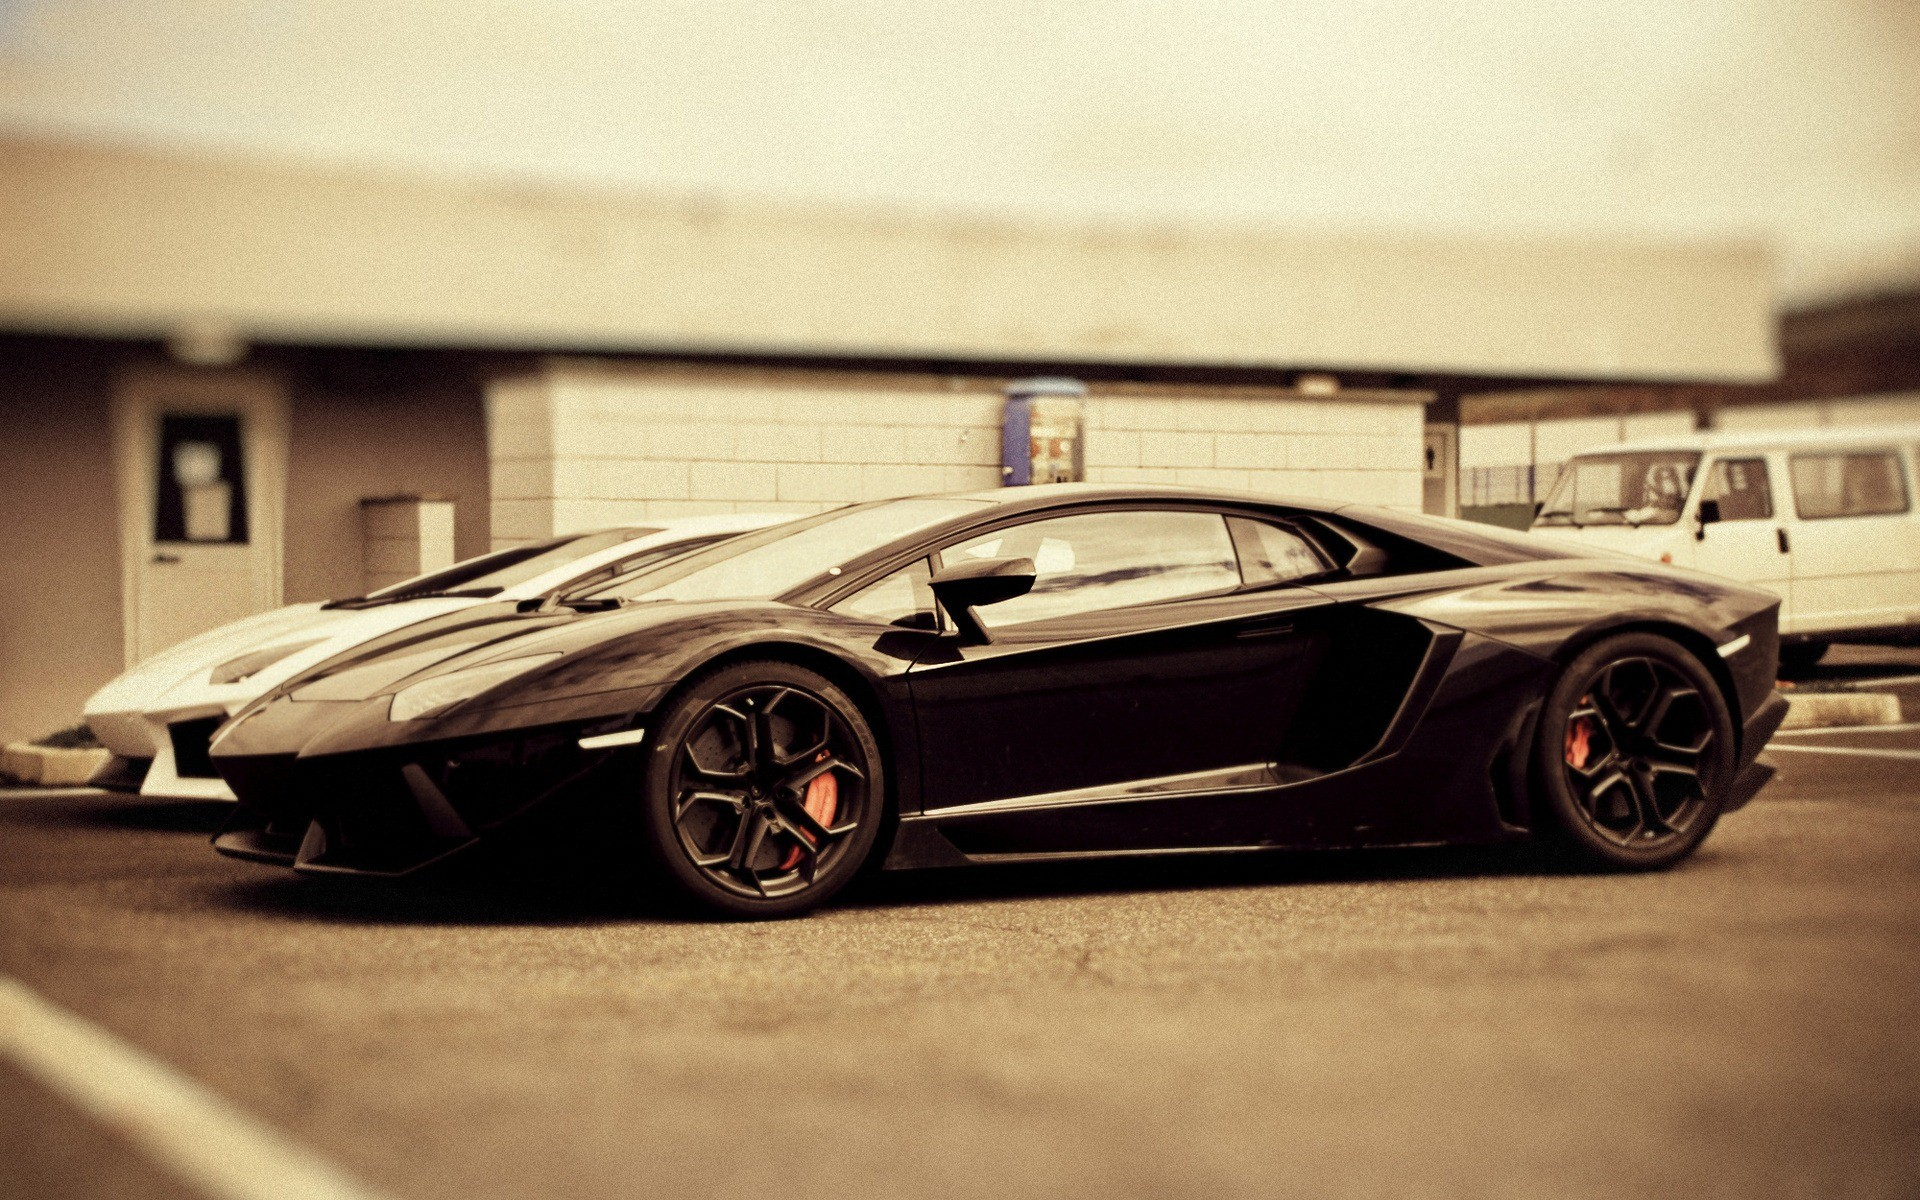 1920x1200 Lamborghini Aventador pictures on HD wallpapers.Only model .